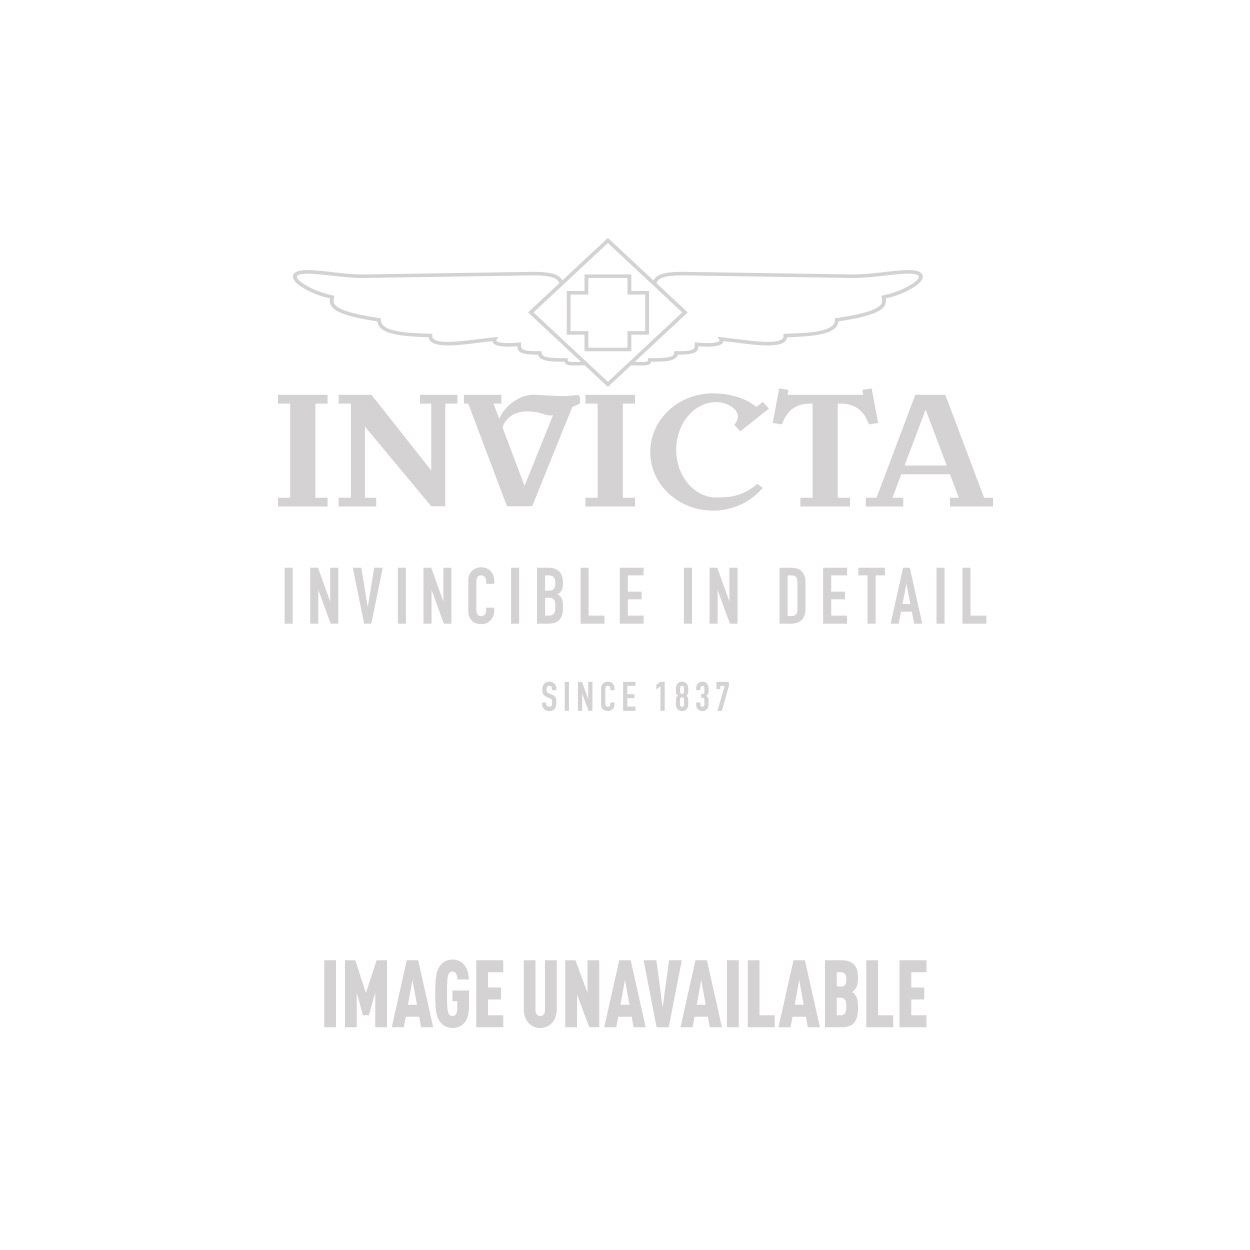 Invicta I-Force Quartz Watch - Stainless Steel case with Black tone Leather band - Model 90062